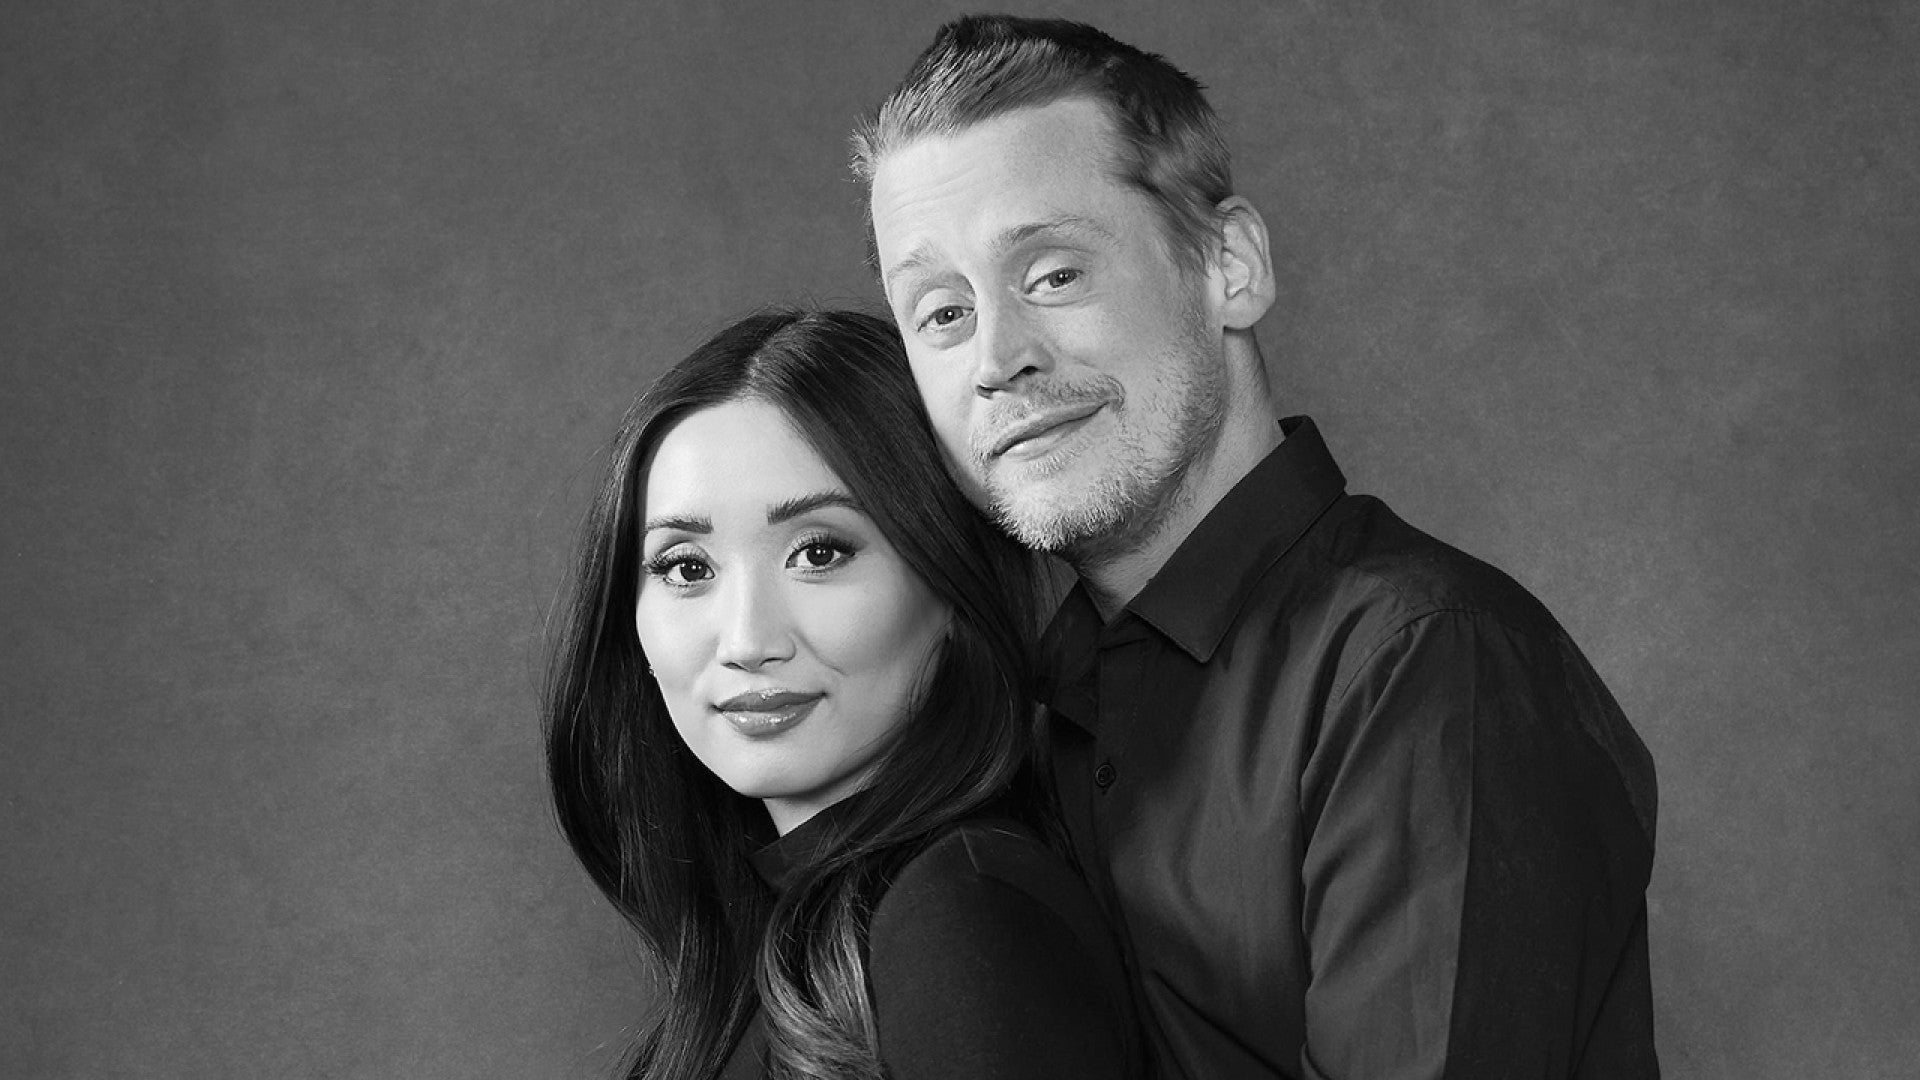 Are Brenda And Macaulay Still Together?